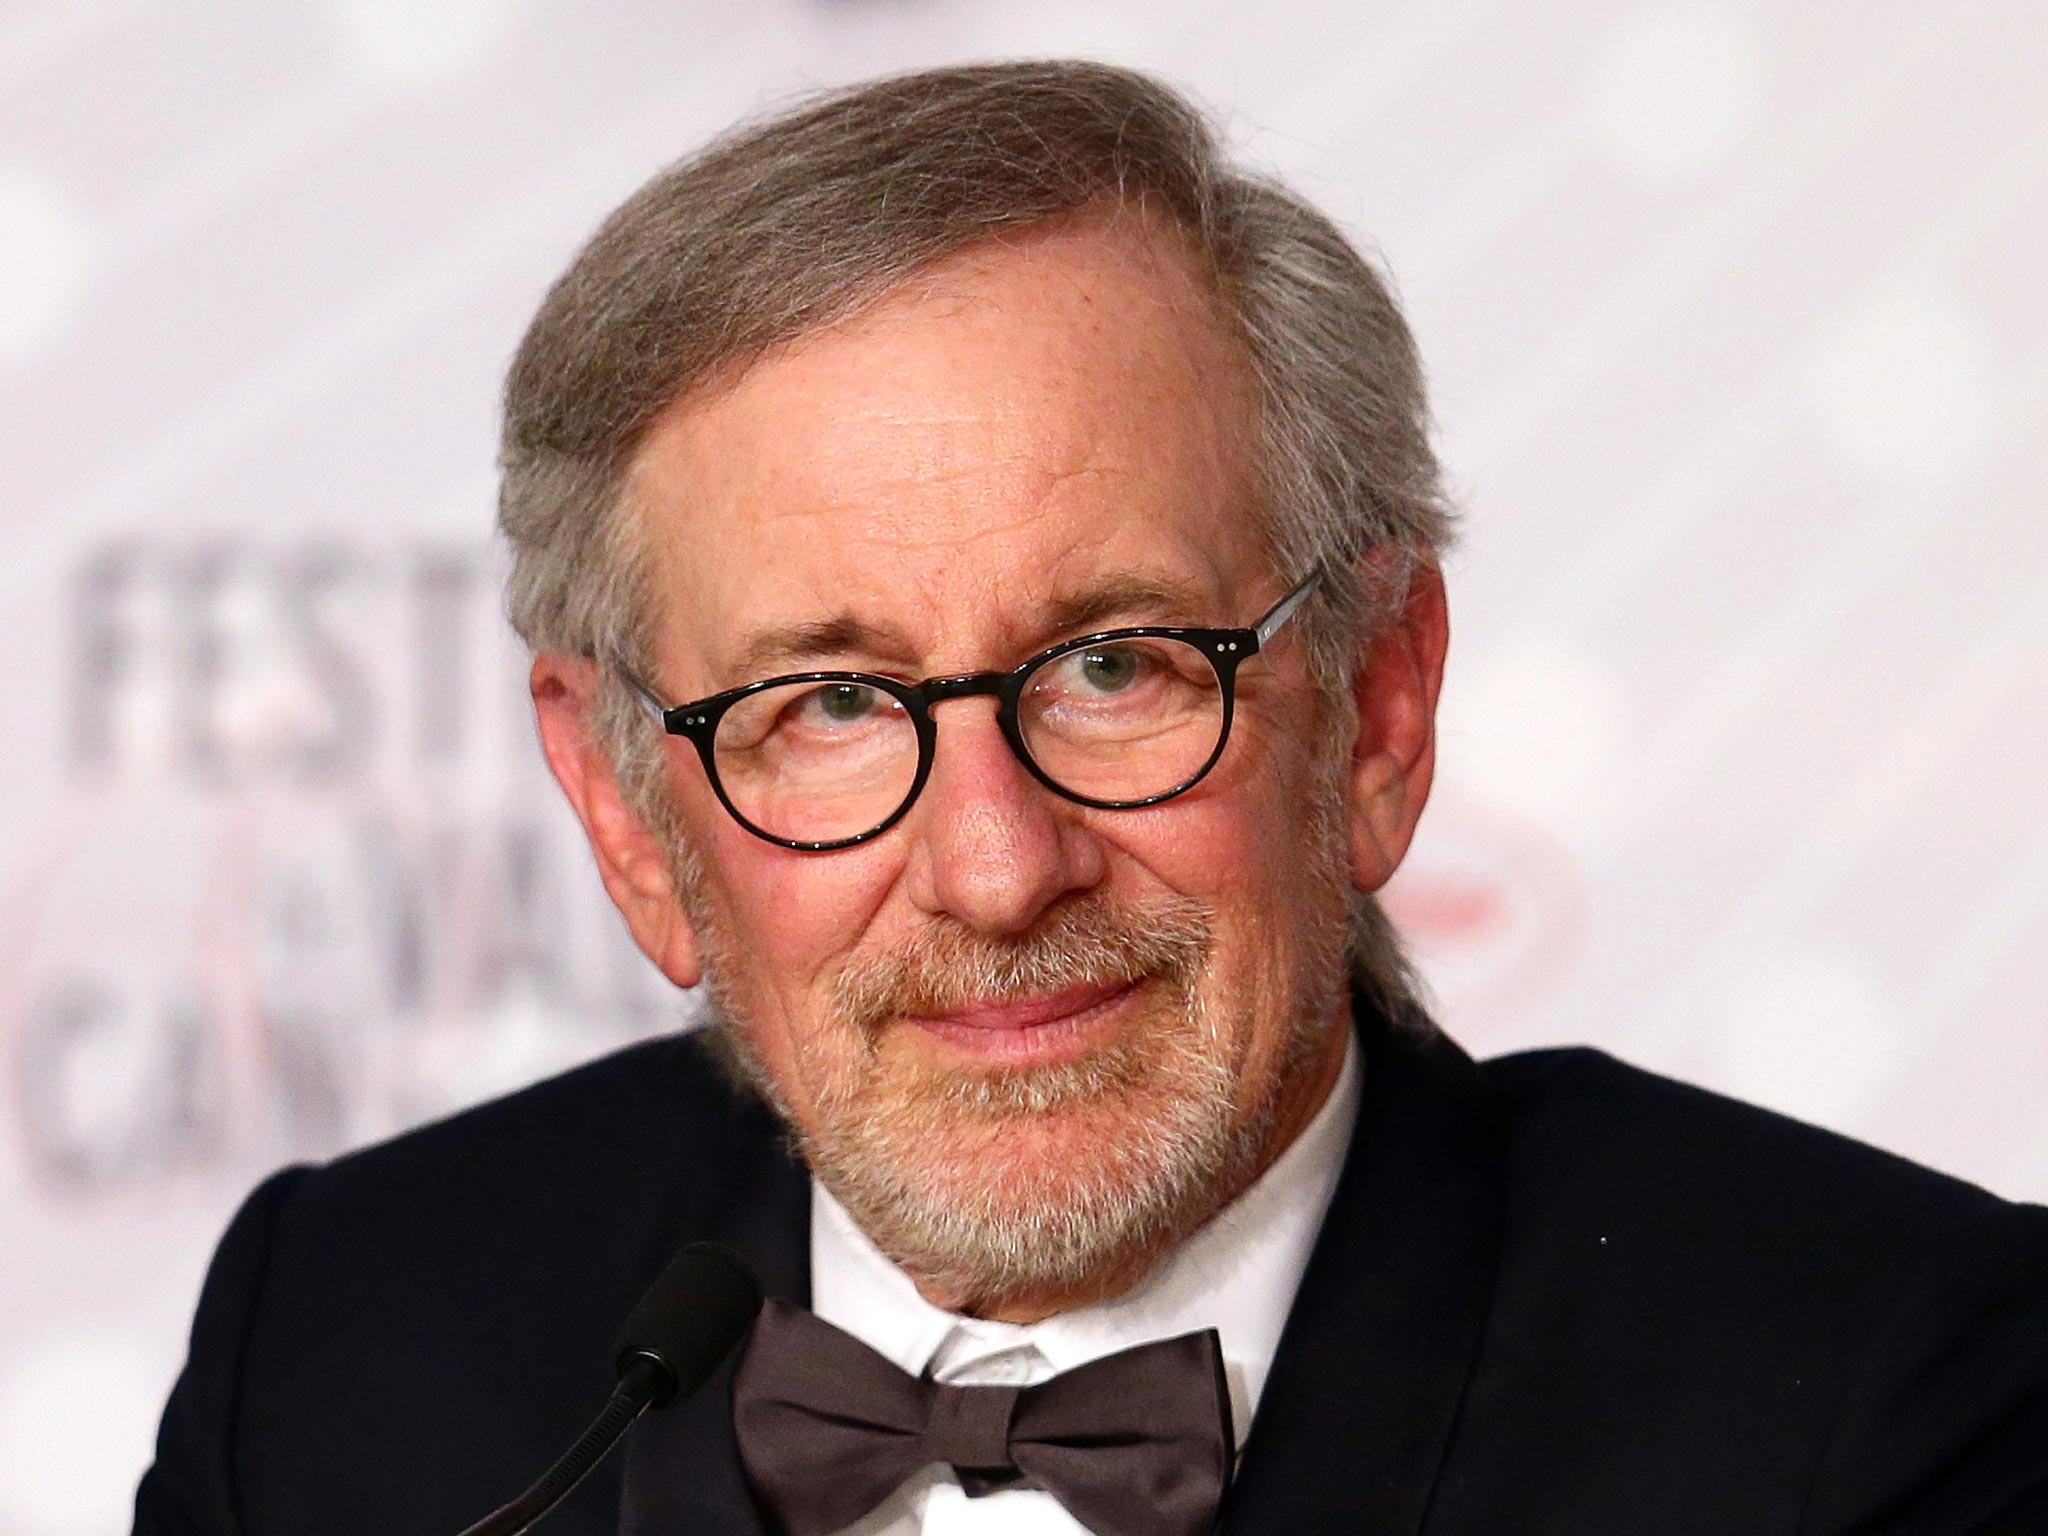 Steven Spielberg tops Forbes Most Influential Celebrities of 2014 list - News - People - The Independent